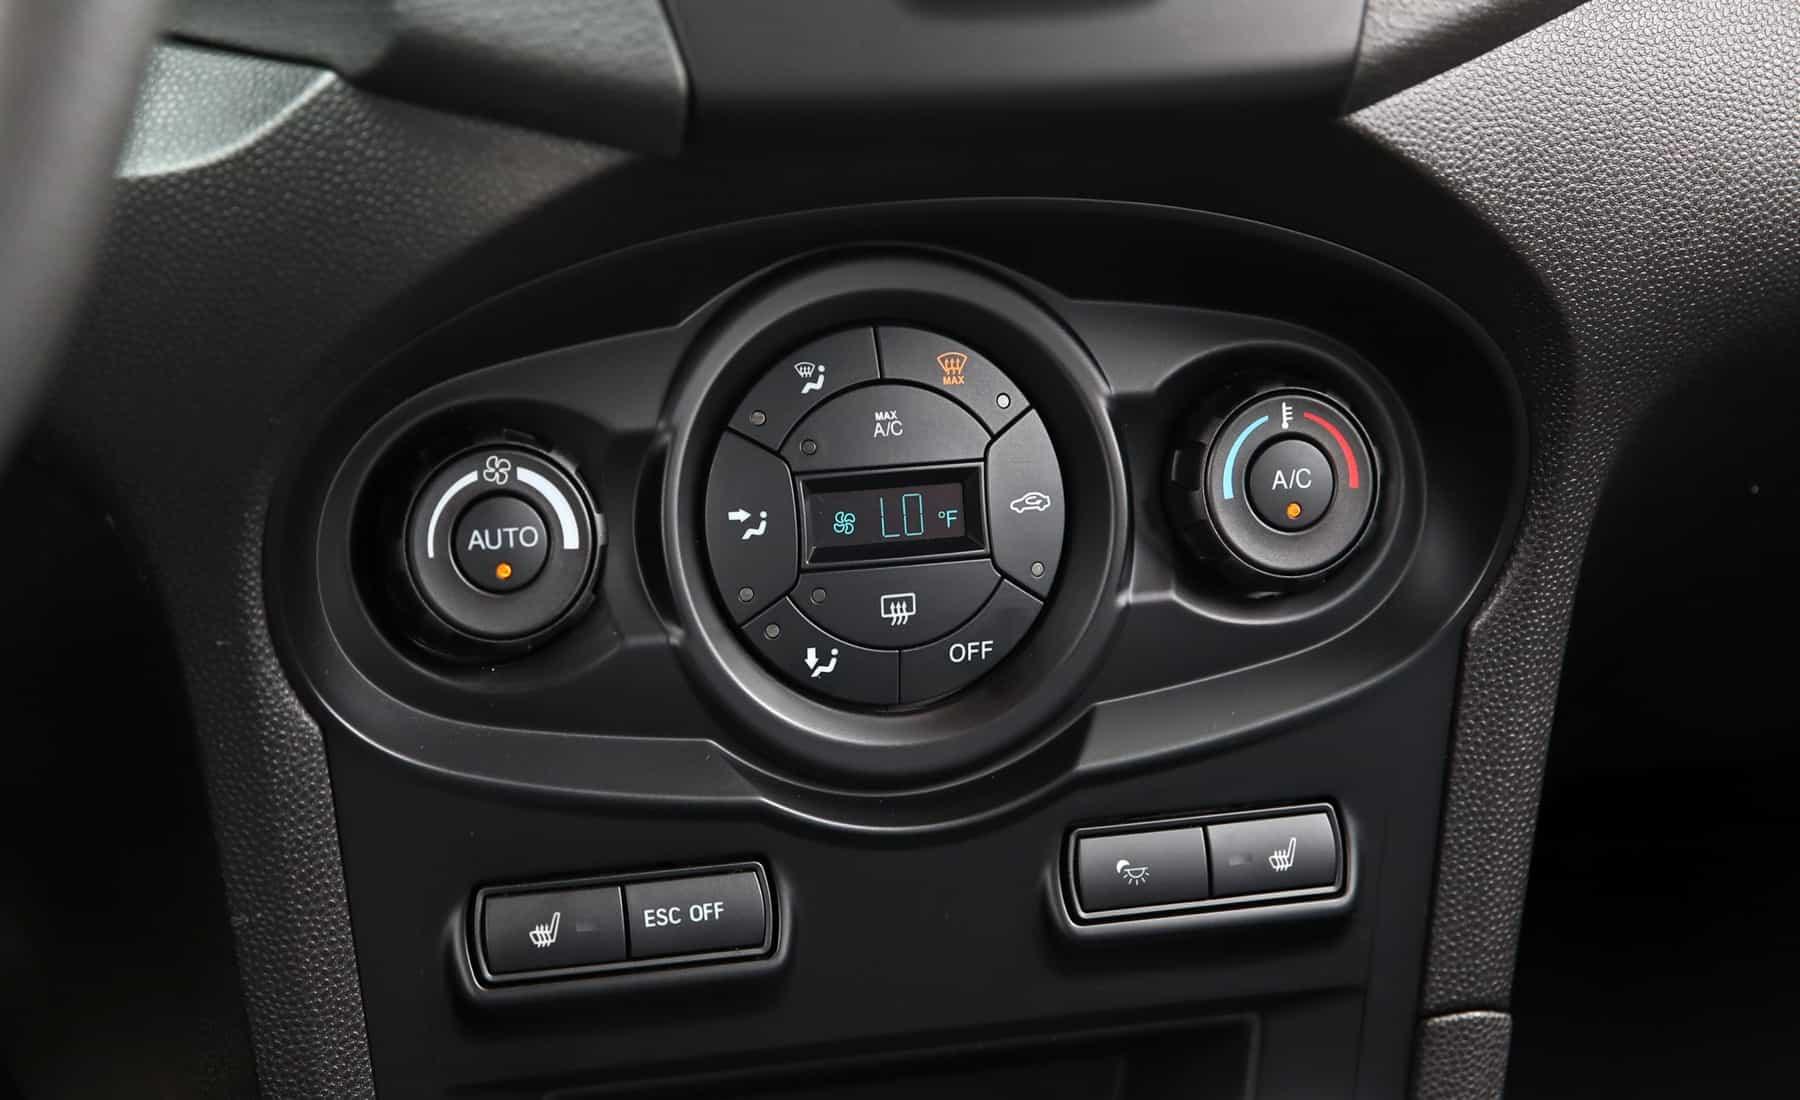 2017 Ford Fiesta ST Interior View Climate Control (Photo 27 of 47)